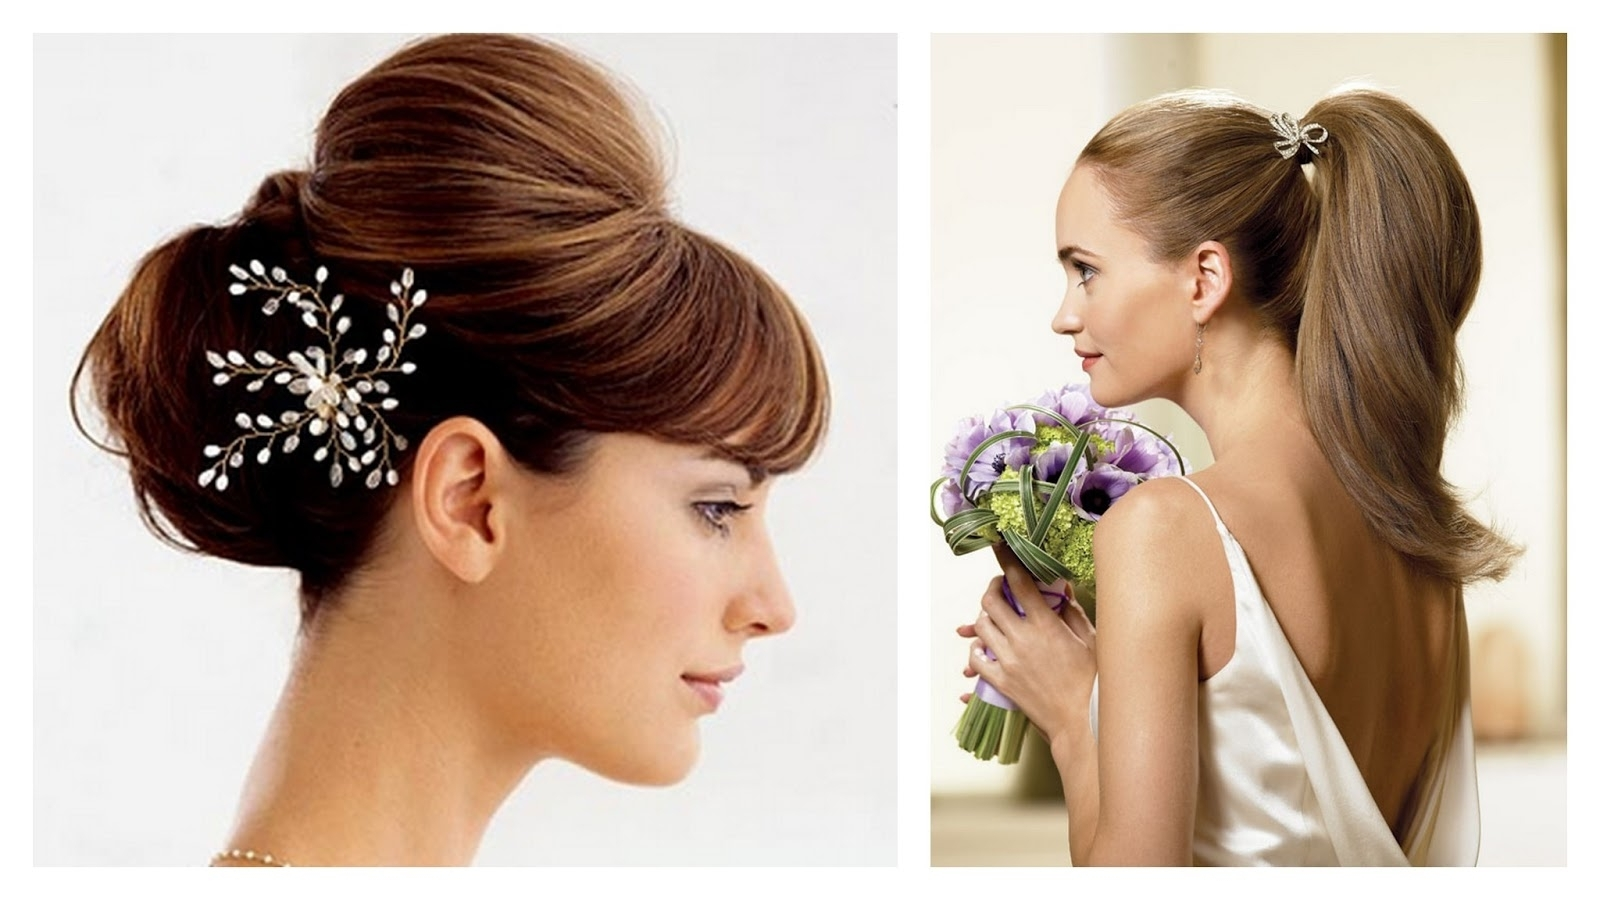 Clip Hair Extensions Hairstyles Wedding Hairstyle Updos (View 4 of 15)